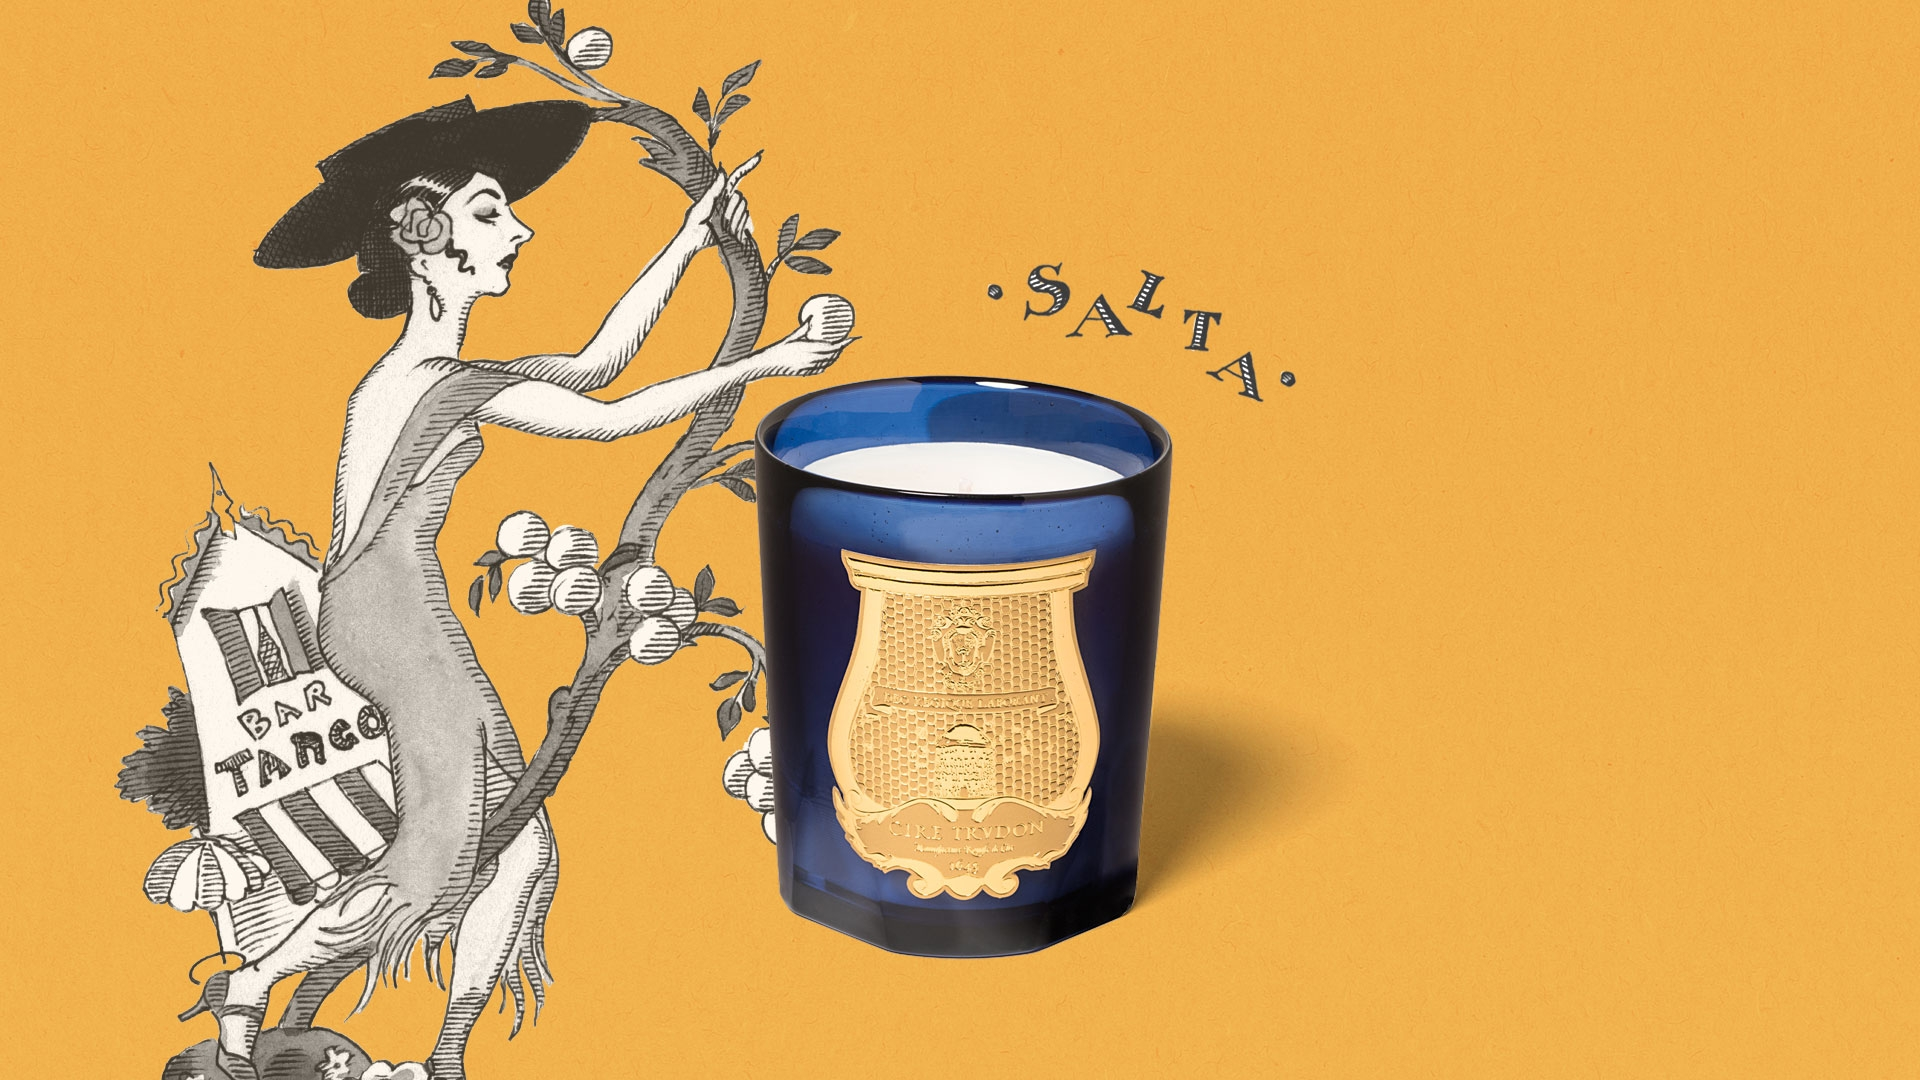 Trudon Candlemaker Since 1643